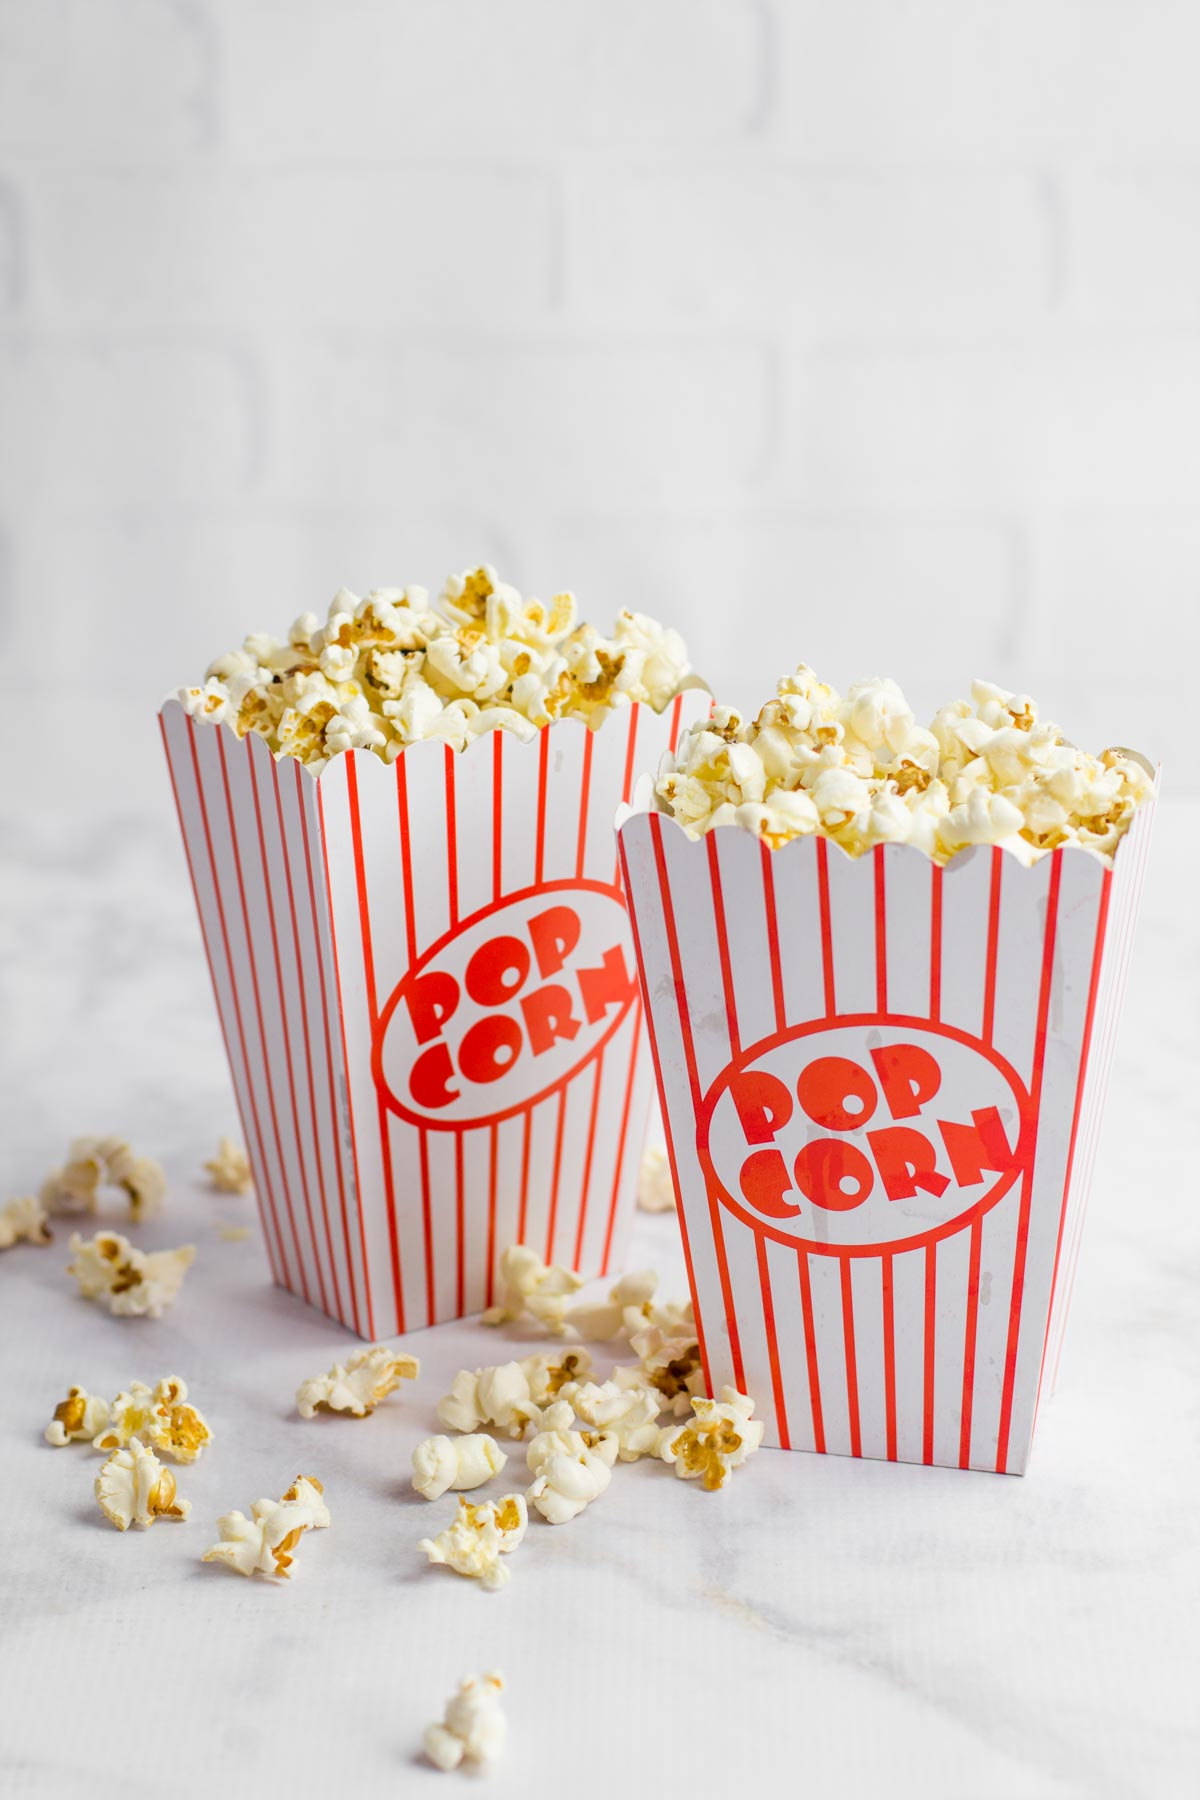 popcorn movie theatre pop corn stand concession things wholefully machine popc recipe translated